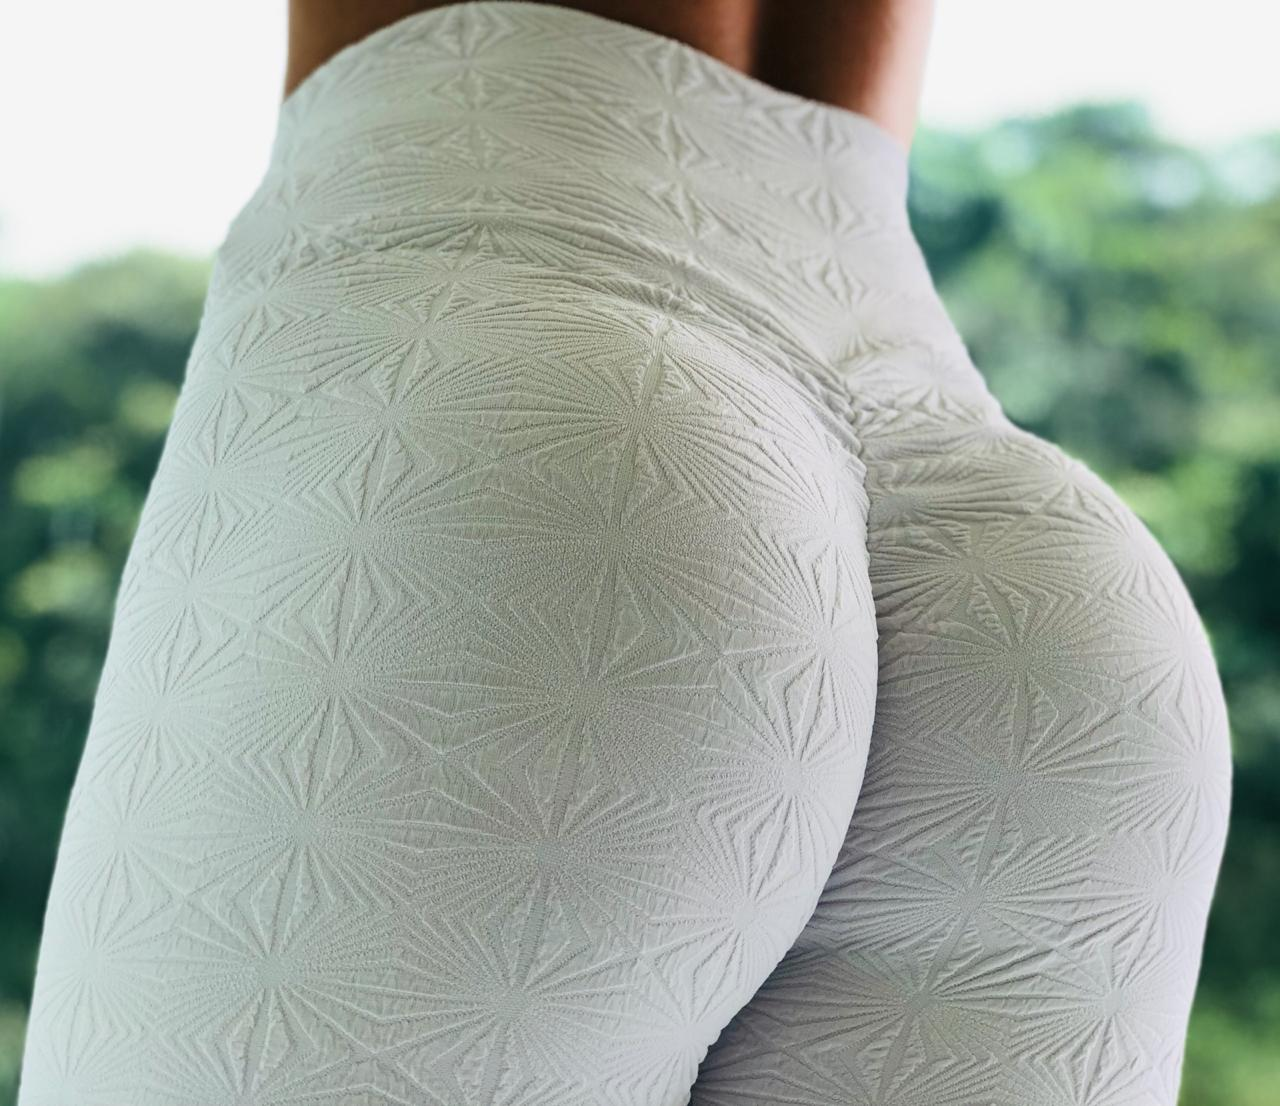 LEGGING EMPINA BUMBUM WHITE DIAMOND